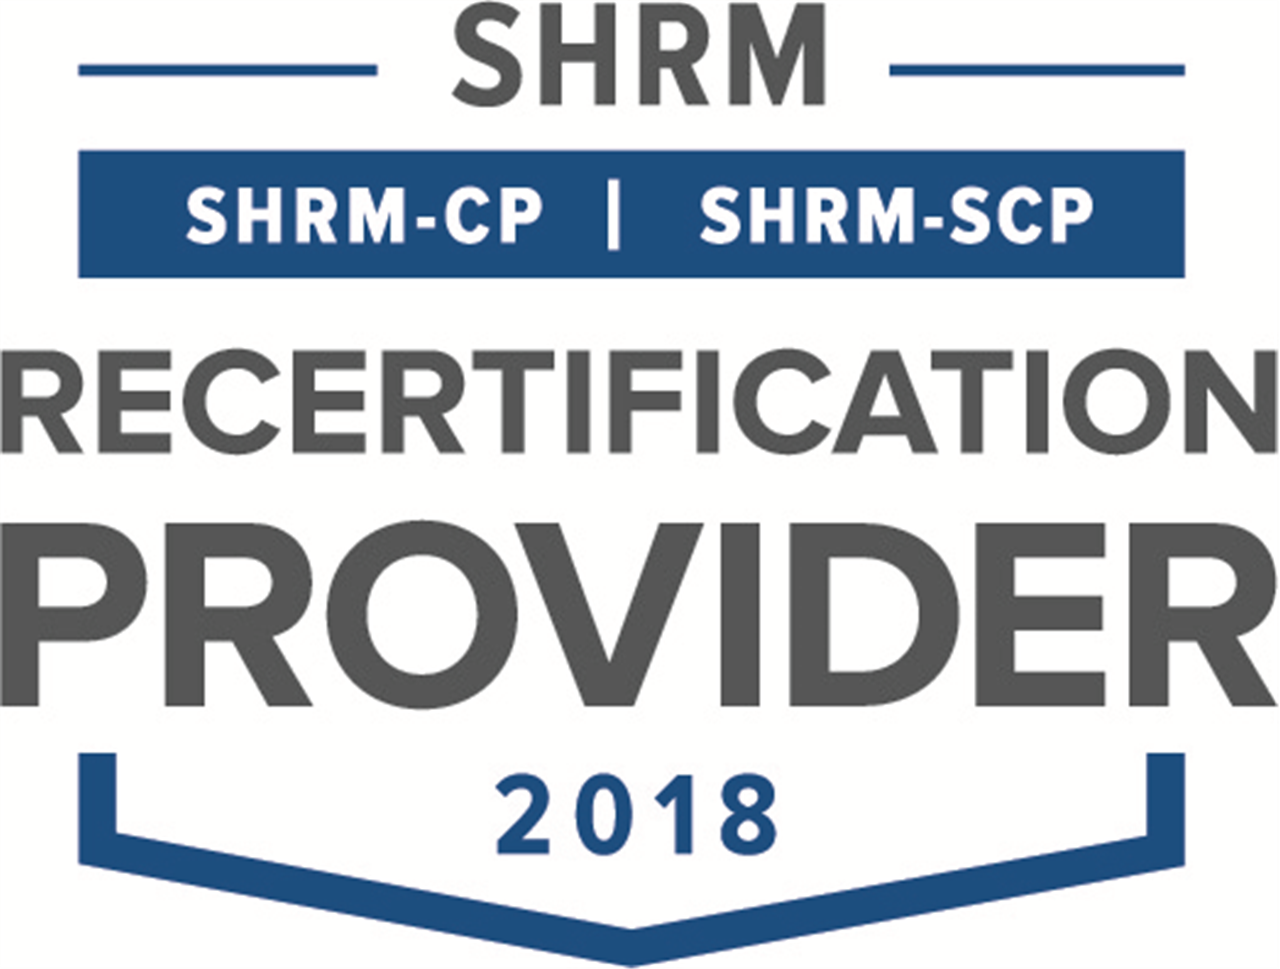 Shrm Cpshrm Scp Certification Preparation Spring 2019